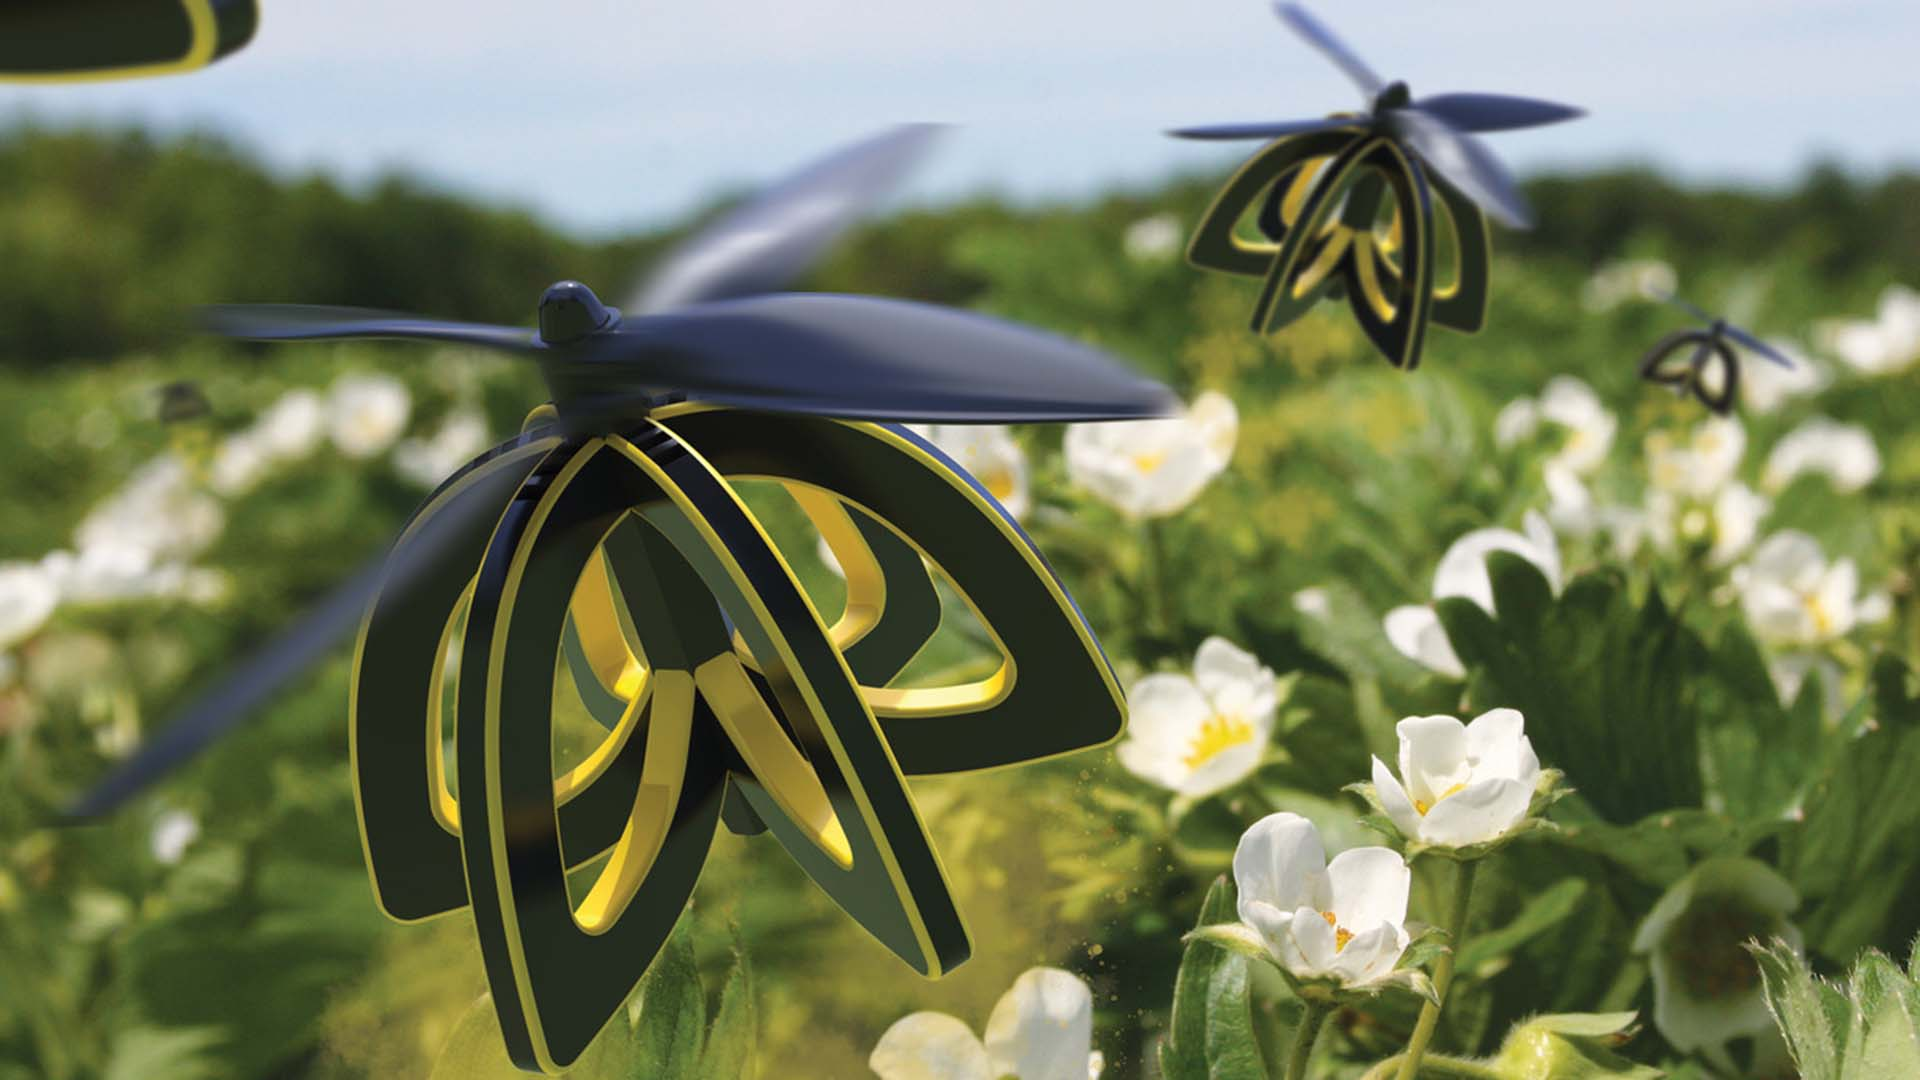 Plan Bee is a flying robot and sizeable drone that flies about 10 feet above orchards, dropping an even coat of pollen